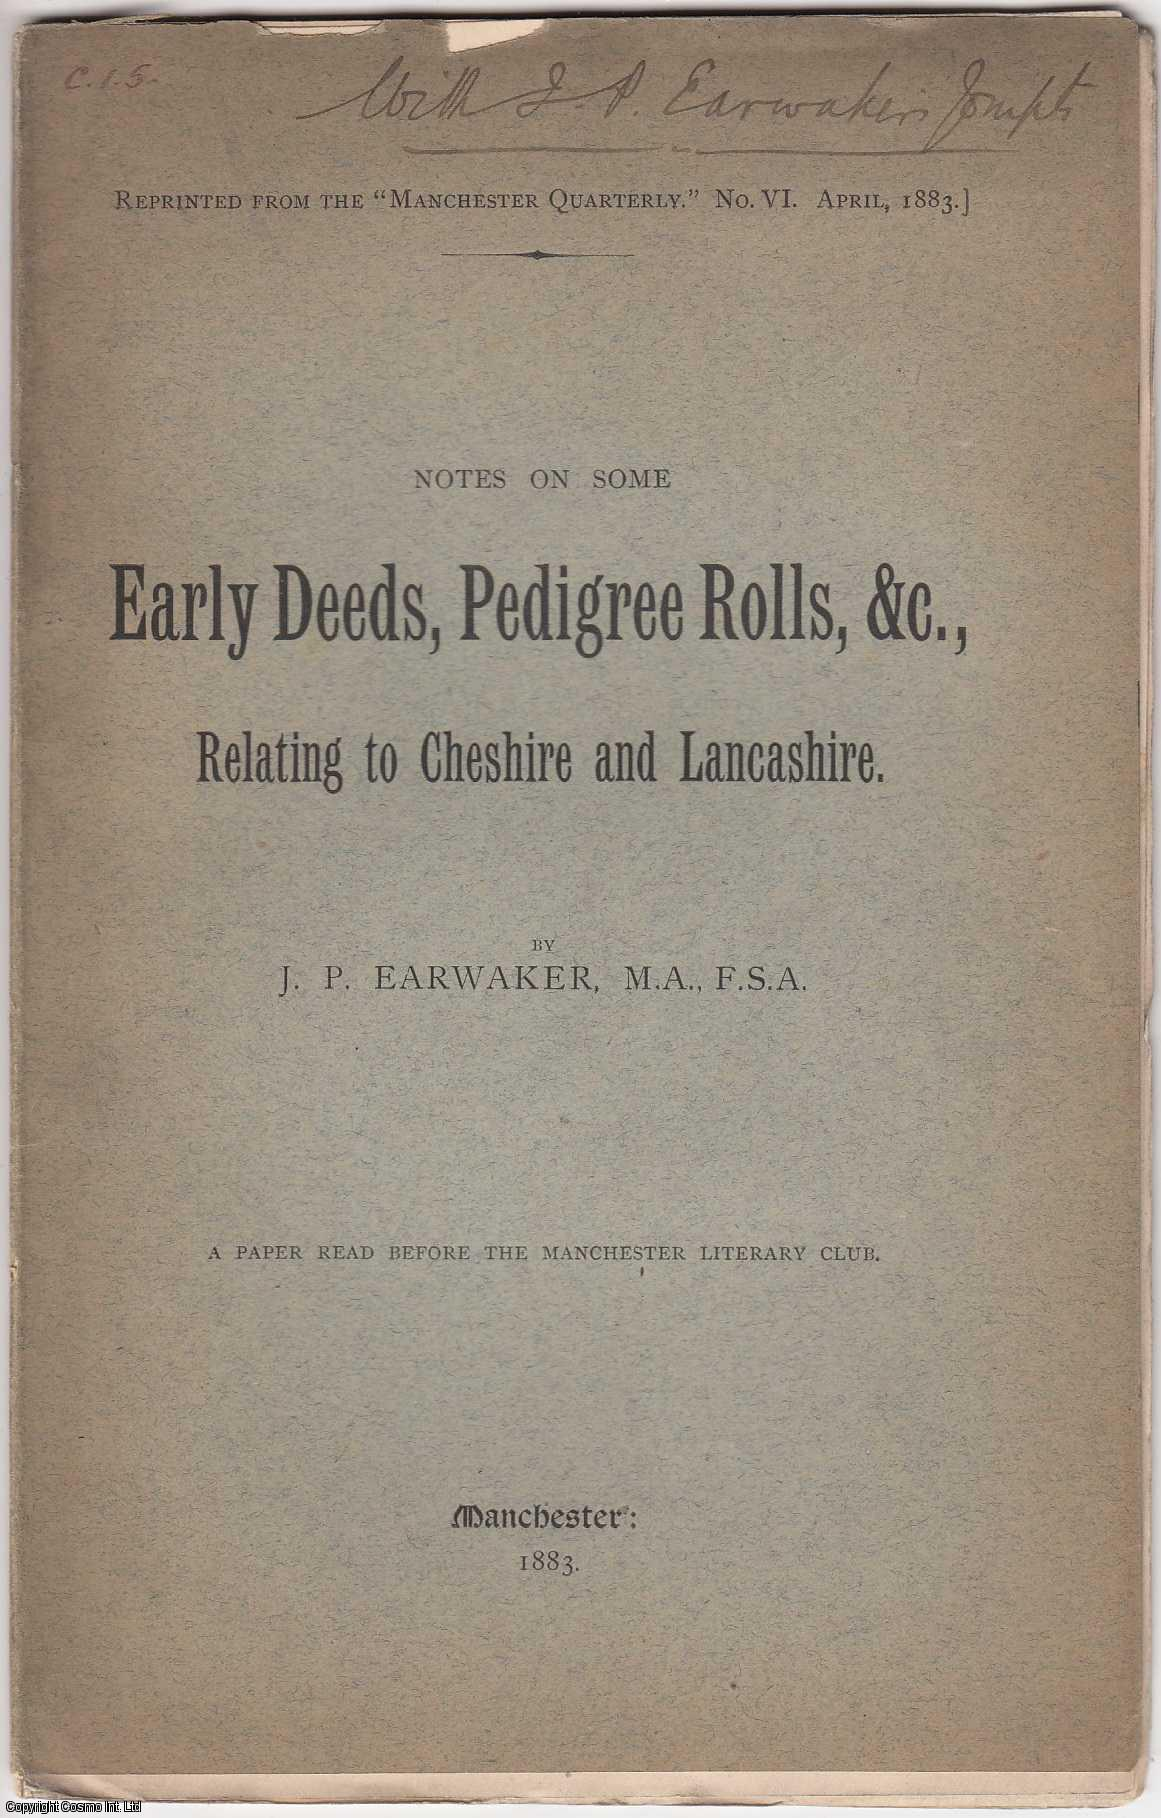 J.P. EARWAKER, M.A., F.S.A. - [1883] Notes on Some Early Deeds, Pedigree Rolls, &c., Relating to Cheshire and Lancashire. A paper read before the Manchester Literary Club. Author's Presentation Copy.